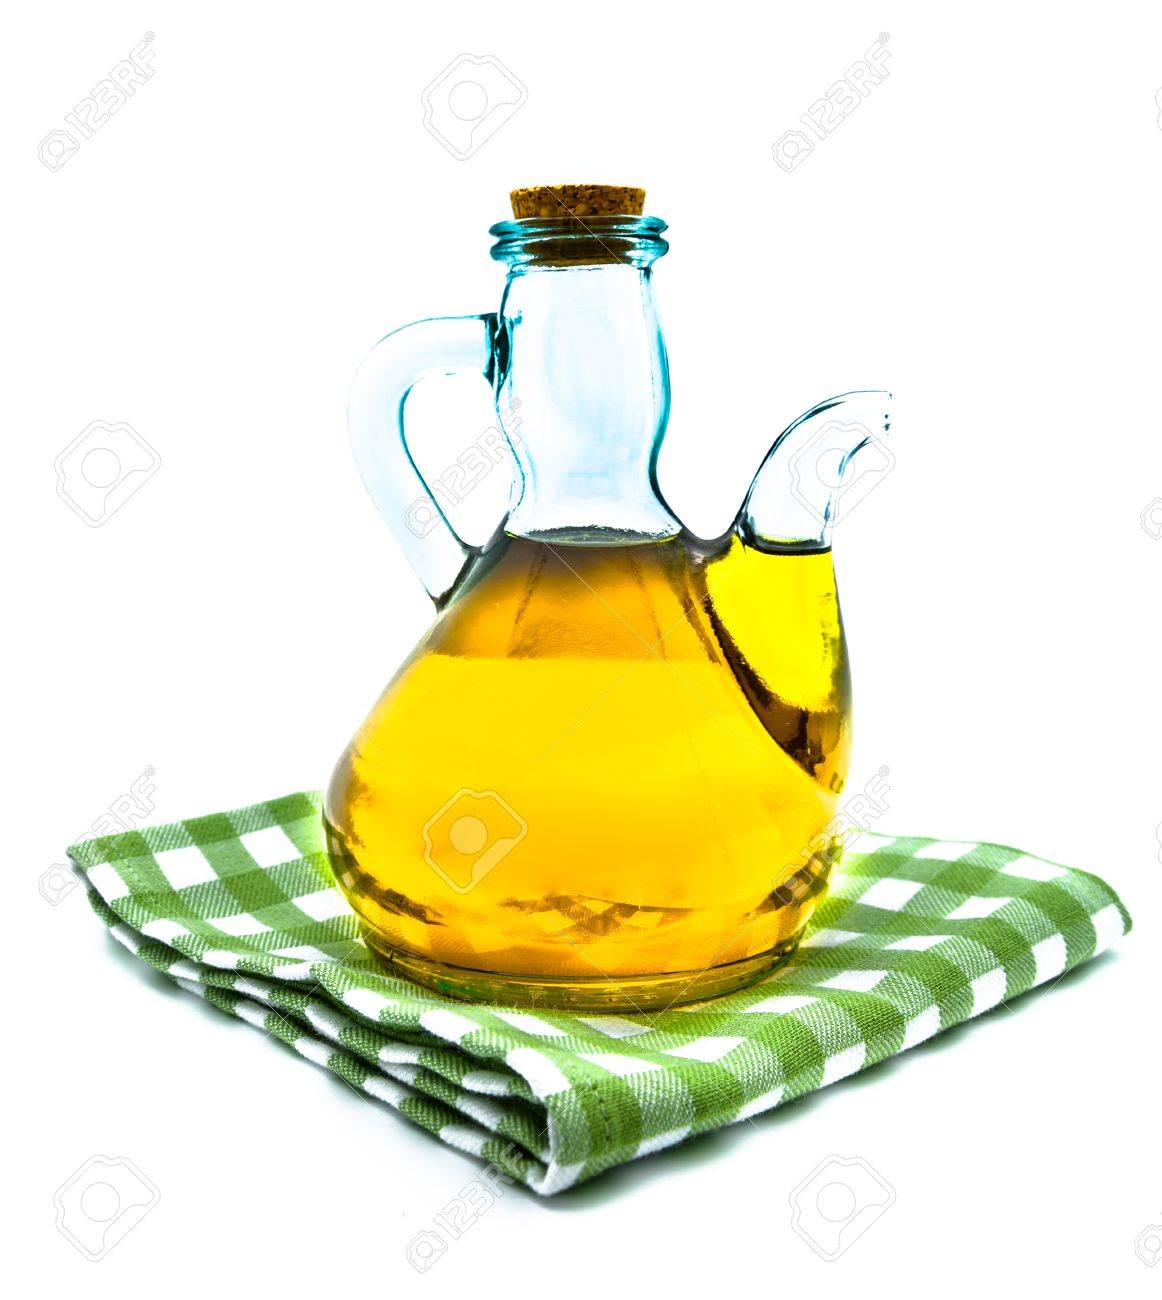 Olive Oil On A Oil Jar On A White Background